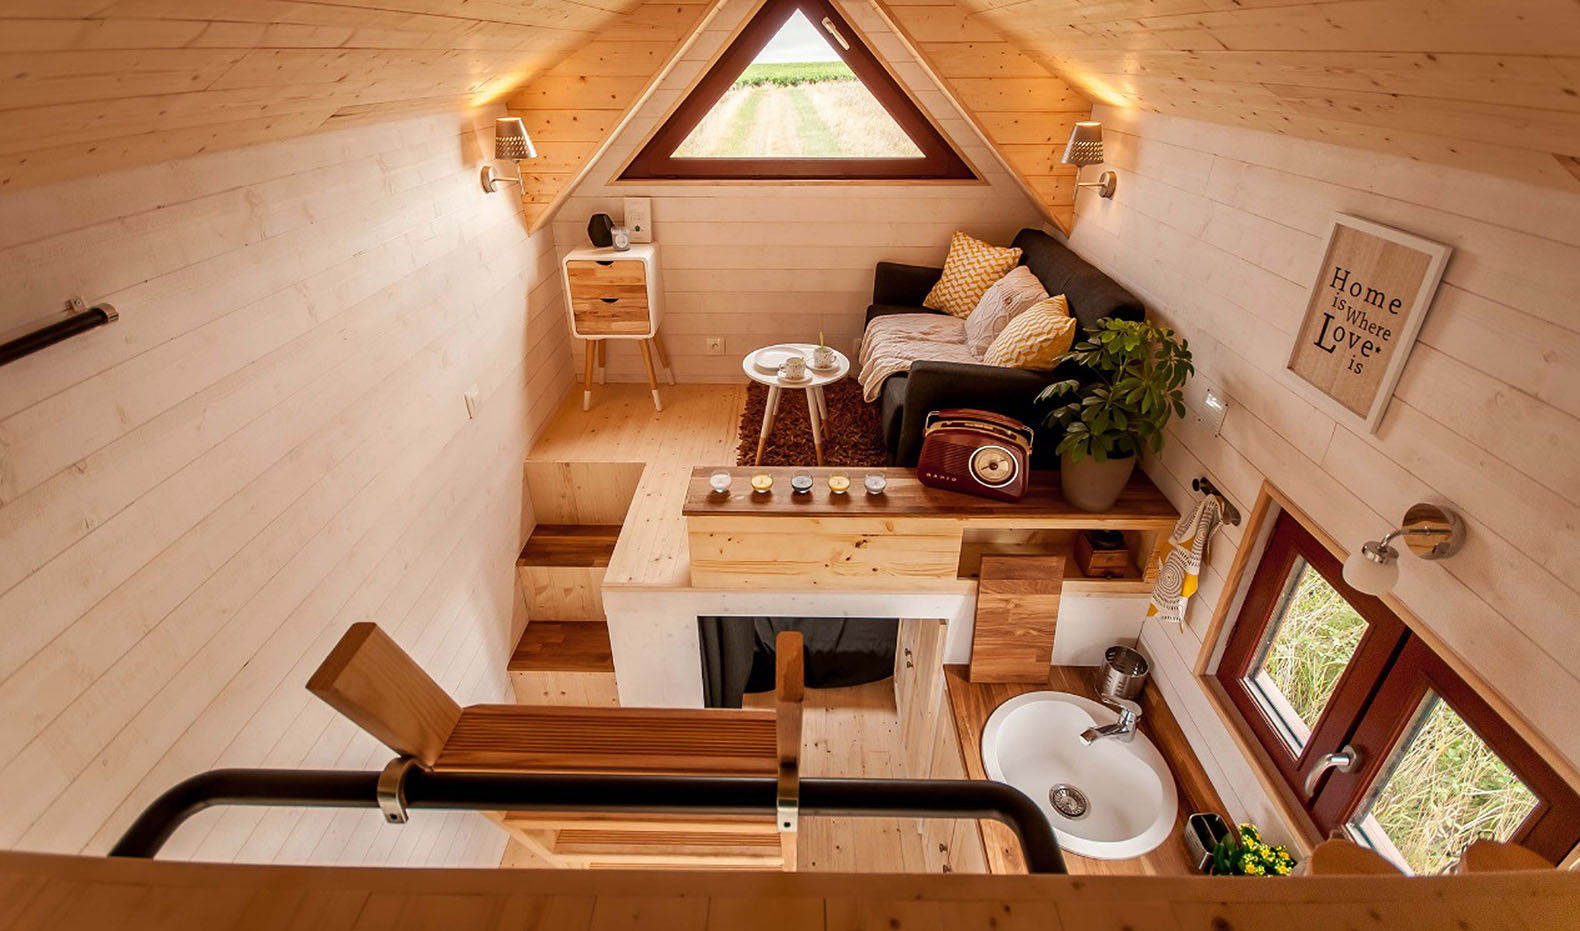 tiny house baluchon odysse house house on wheels tiny house mobile home - Tiny House Mobile